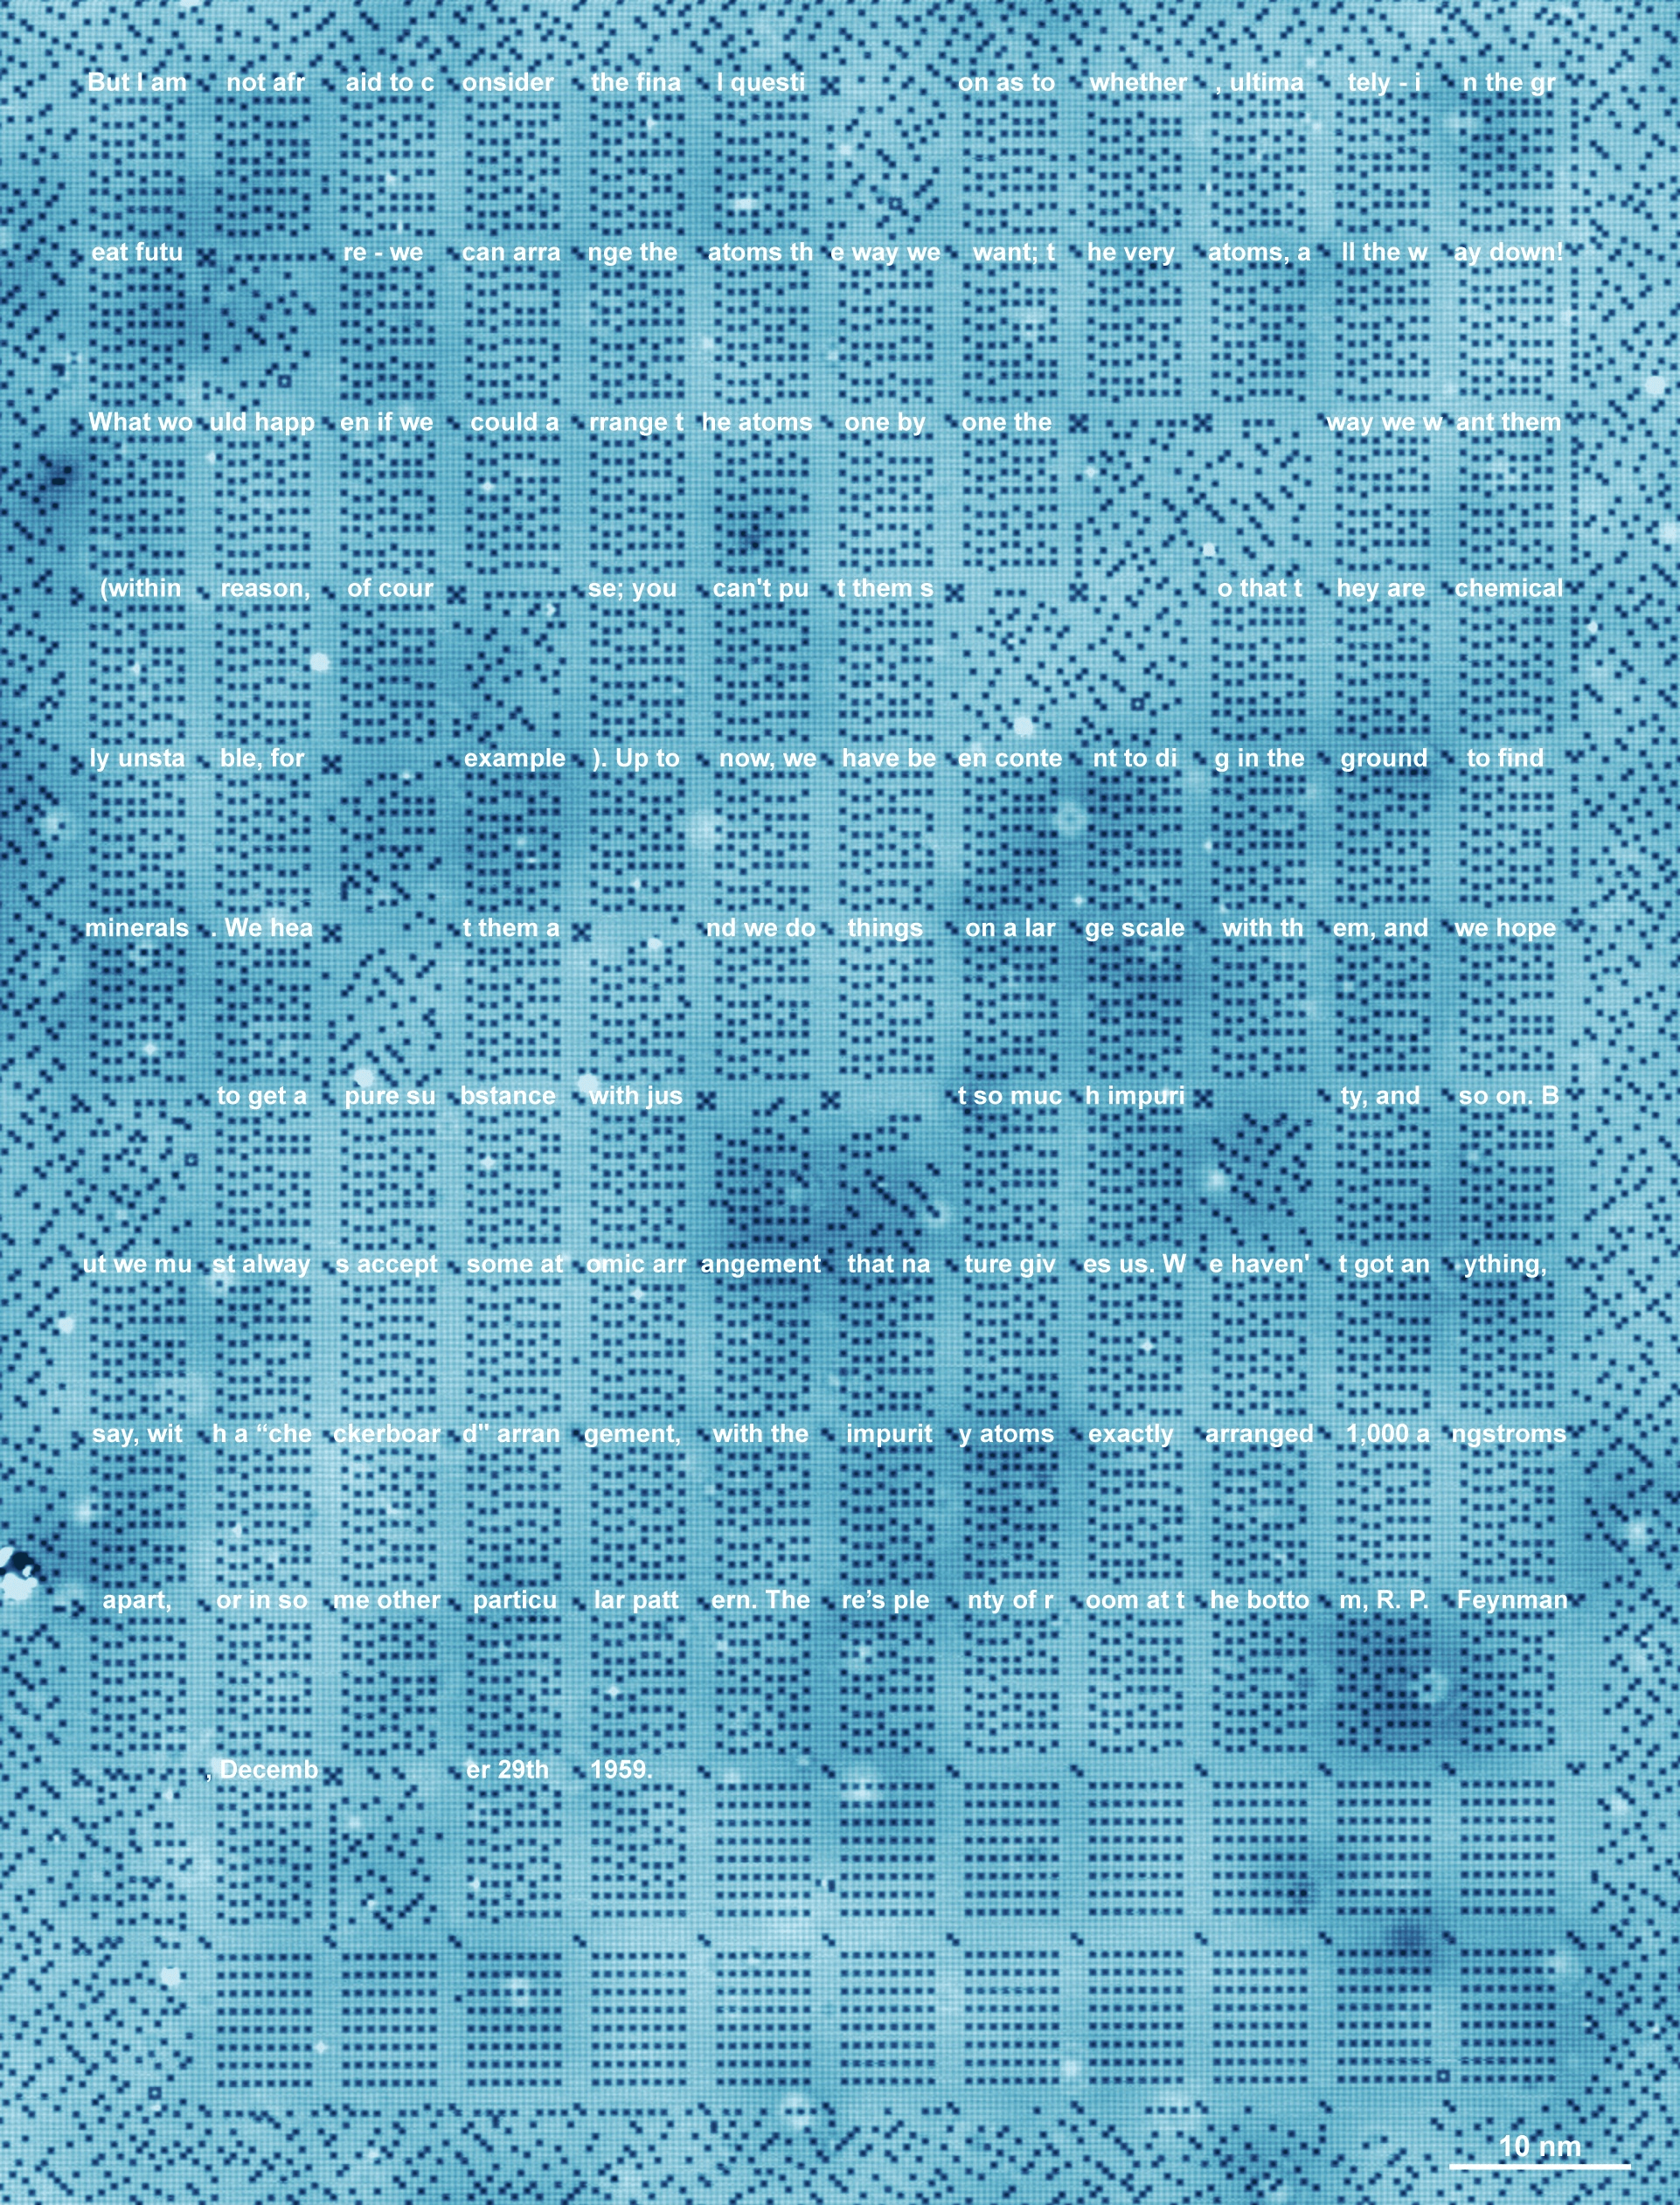 STM scan (96 nm wide, 126 nm tall) of the 1 kB memory, written to a section of Feynman's lecture 'There's Plenty of Room at the Bottom' (with text markup). Credit: Image courtesy of TU Delft